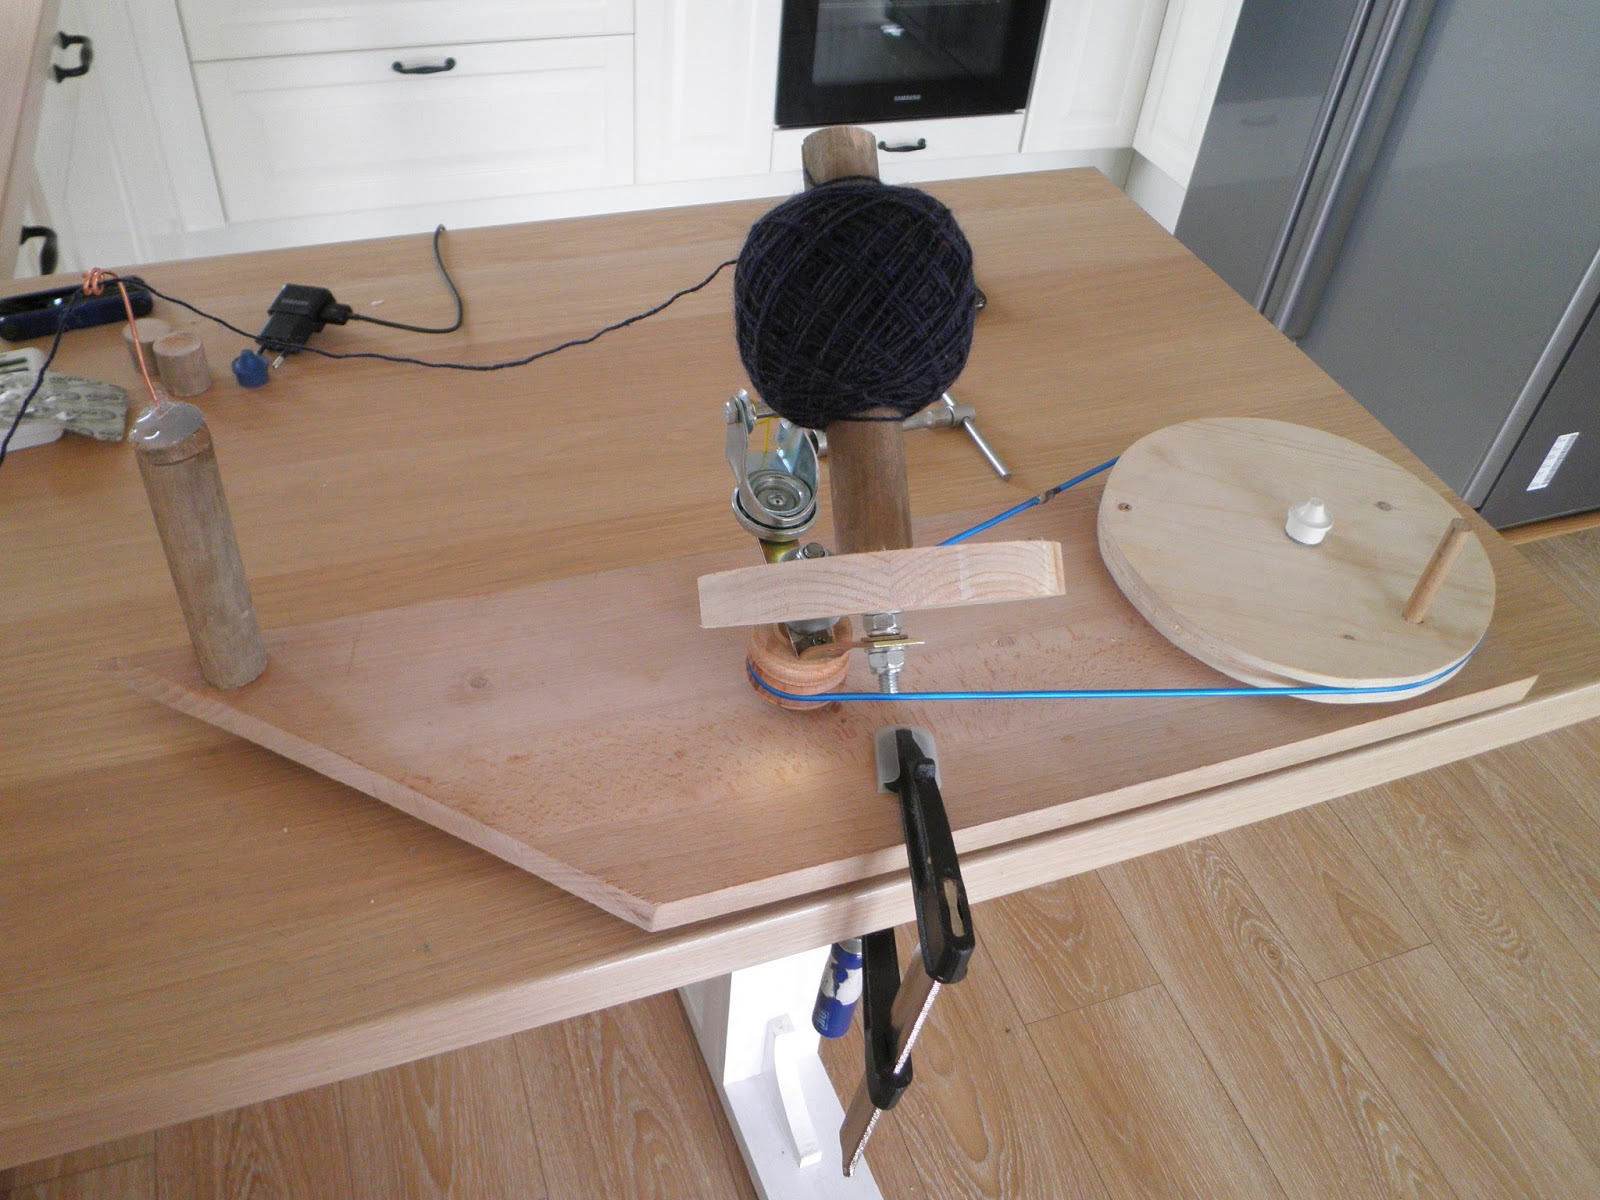 Diy Yarn Ball Winder From Scraps Knitwear And Crafts